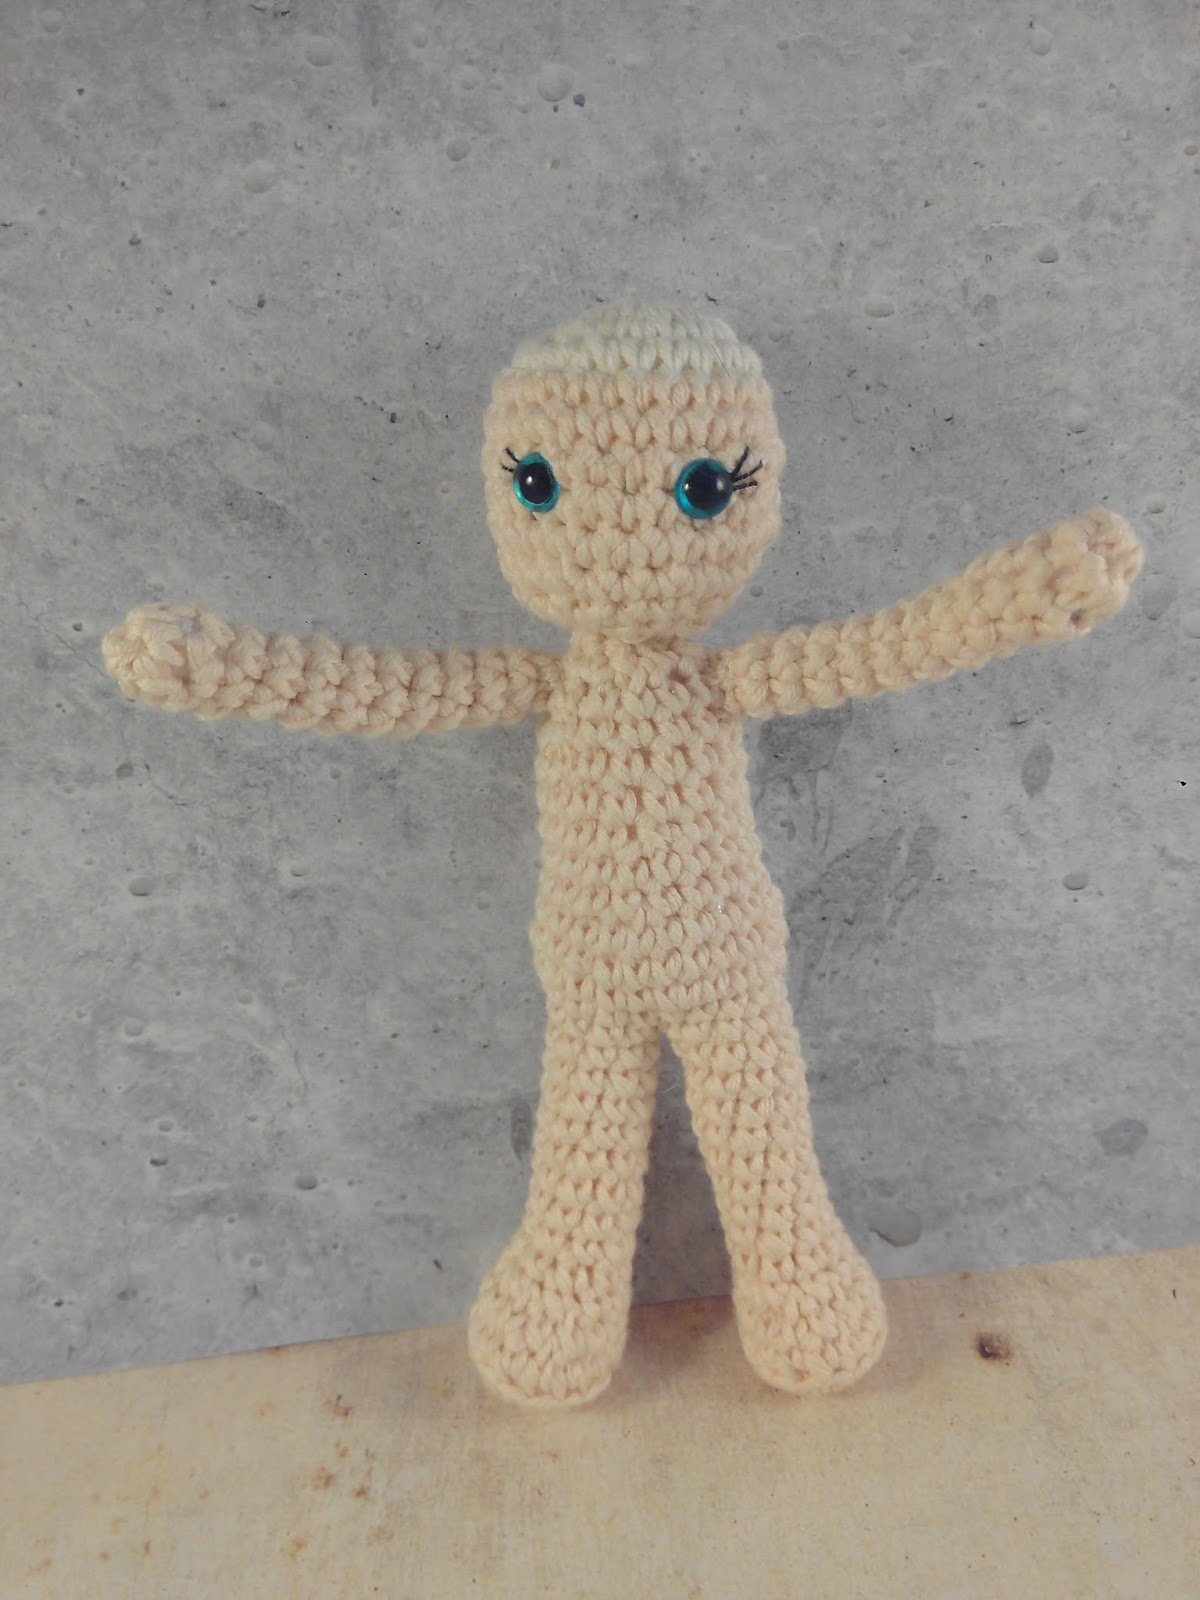 Weebee Crochet Doll - How to sew the arms onto a standard size ... | 1600x1200